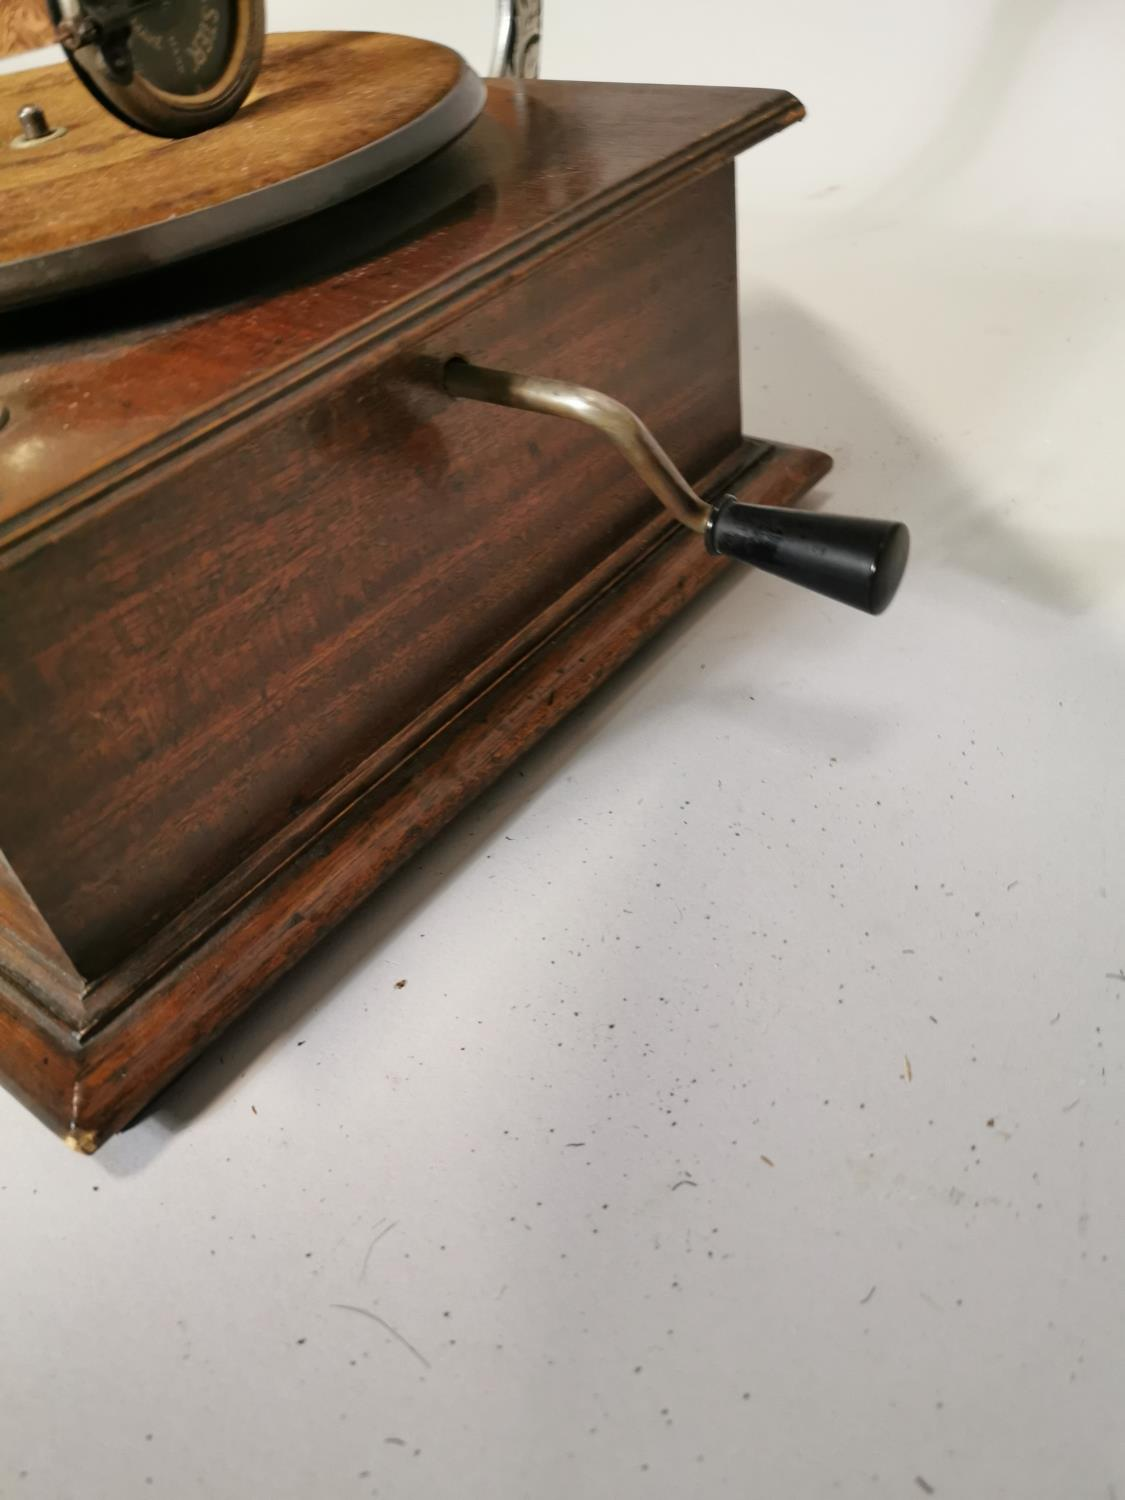 Victory gramophone in oak case with brass horn - Image 7 of 7